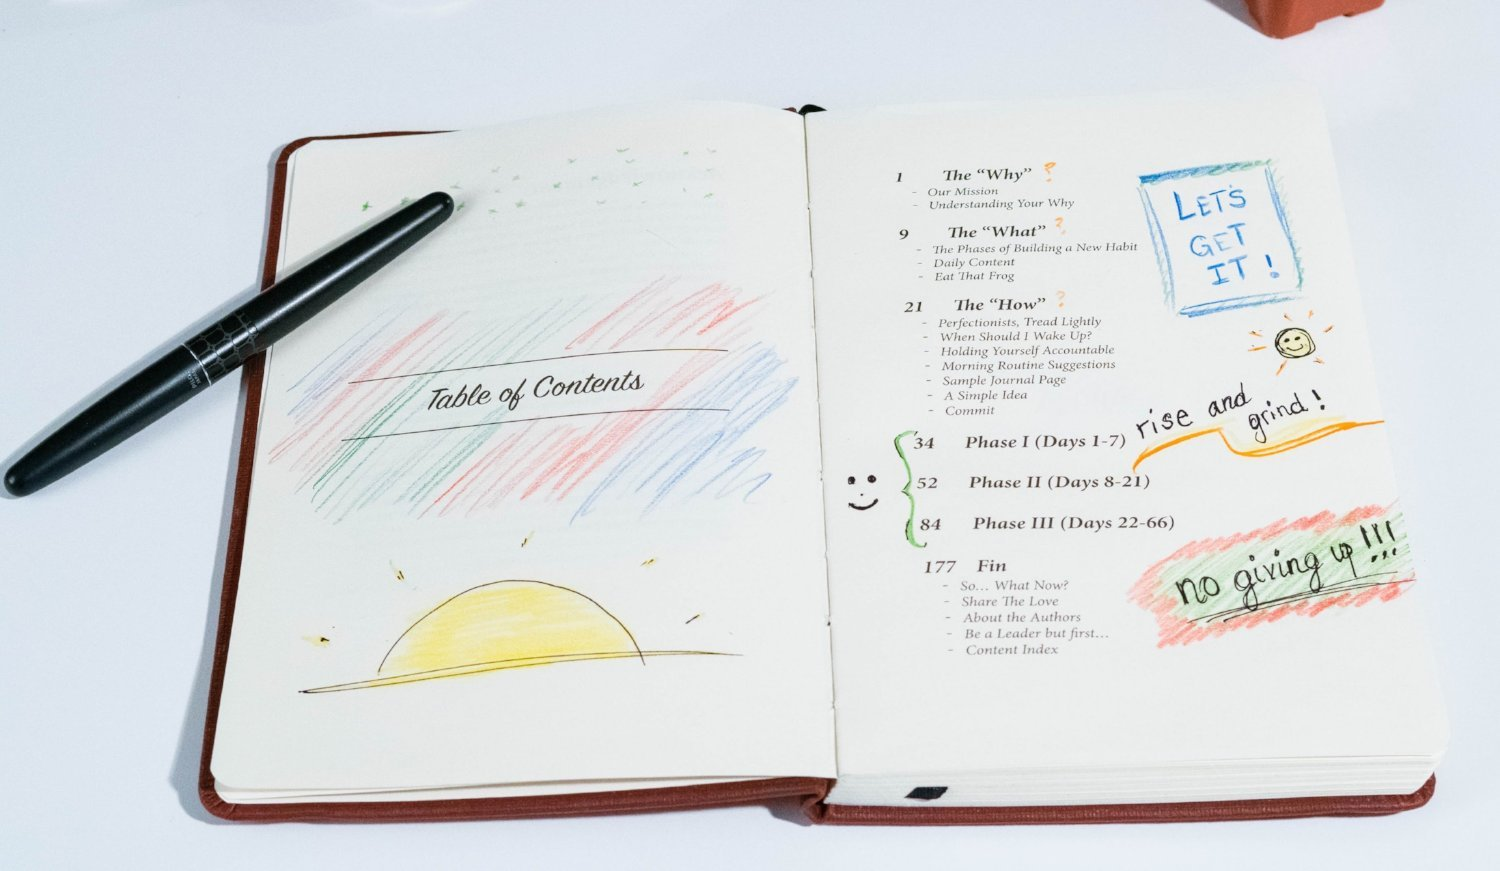 morning sidekick journal, miracle morning, wake up early, morning routine, habit tracker